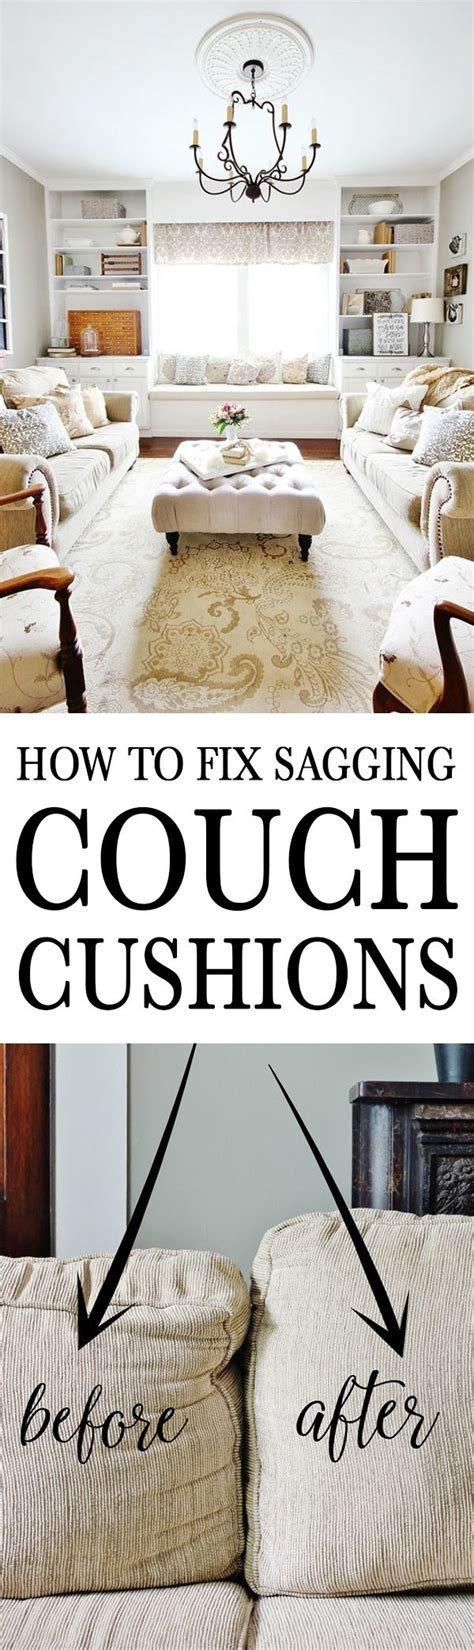 how to fix couch cushion sag how to fix sagging couch cushions home decorating diy ideas